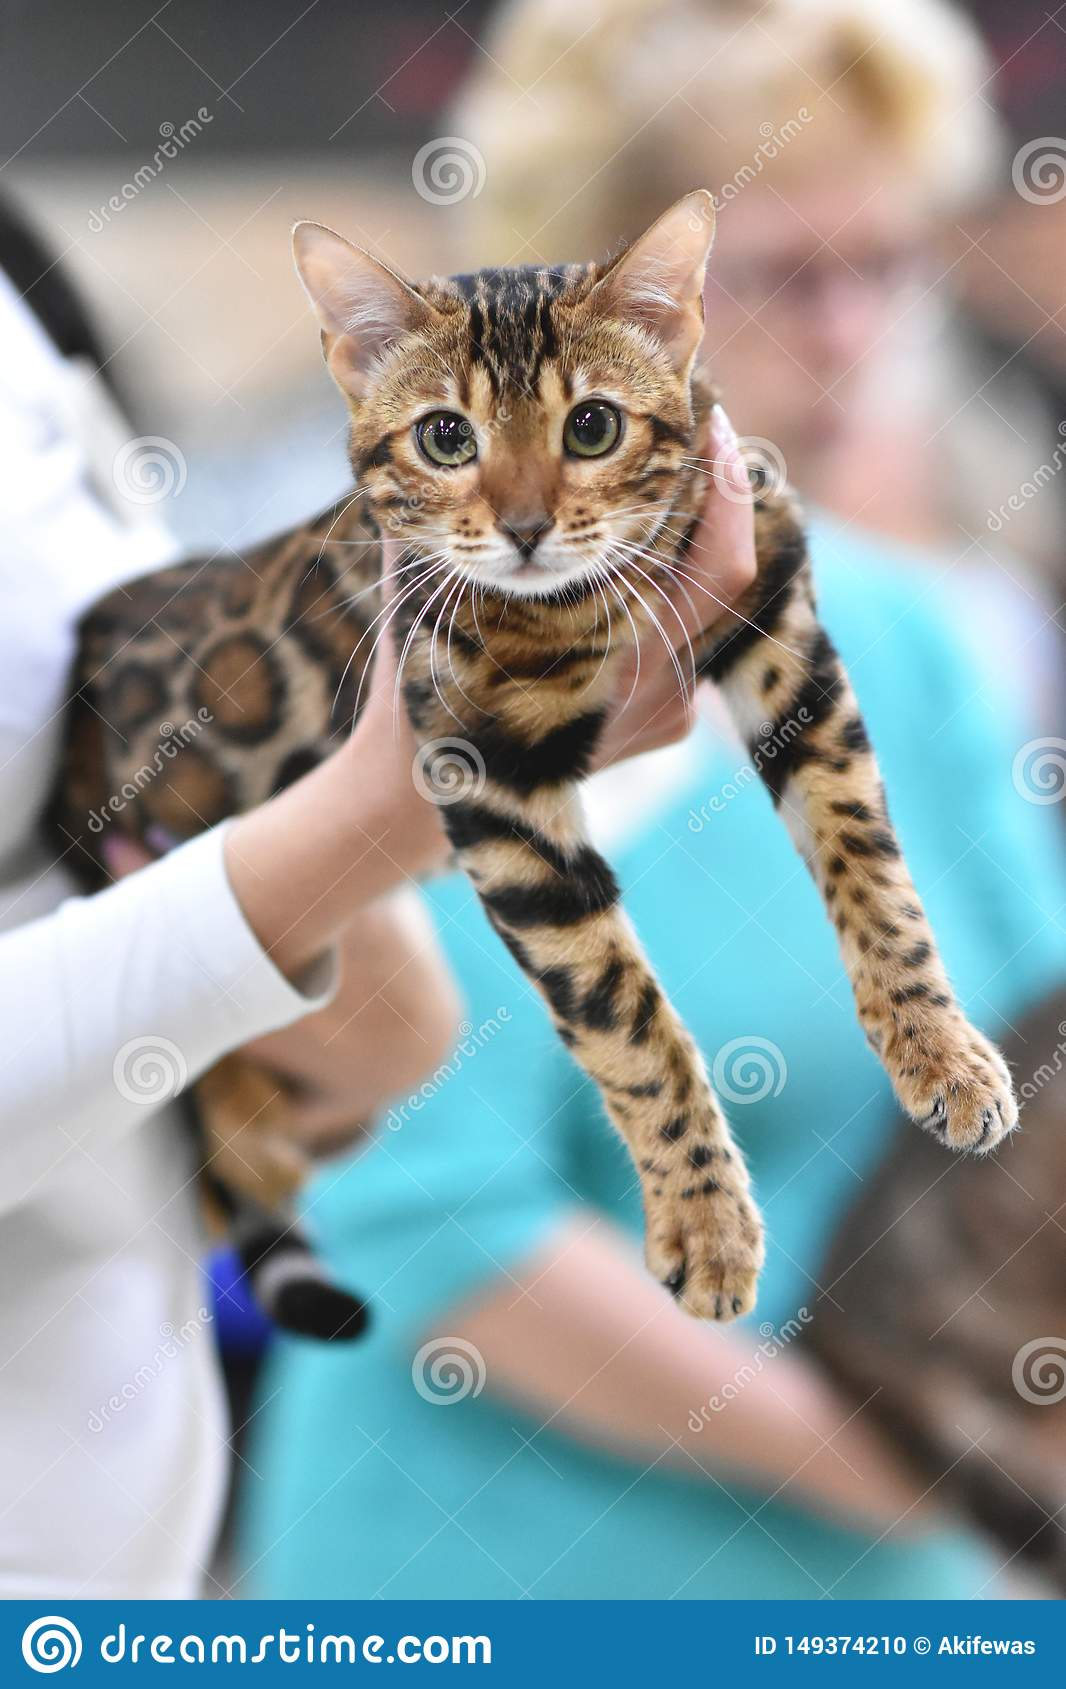 Chelyabinsk, Russian Federation - 08 September 2018. Bengal cat brown spotted tabby color in the exhibition of cats